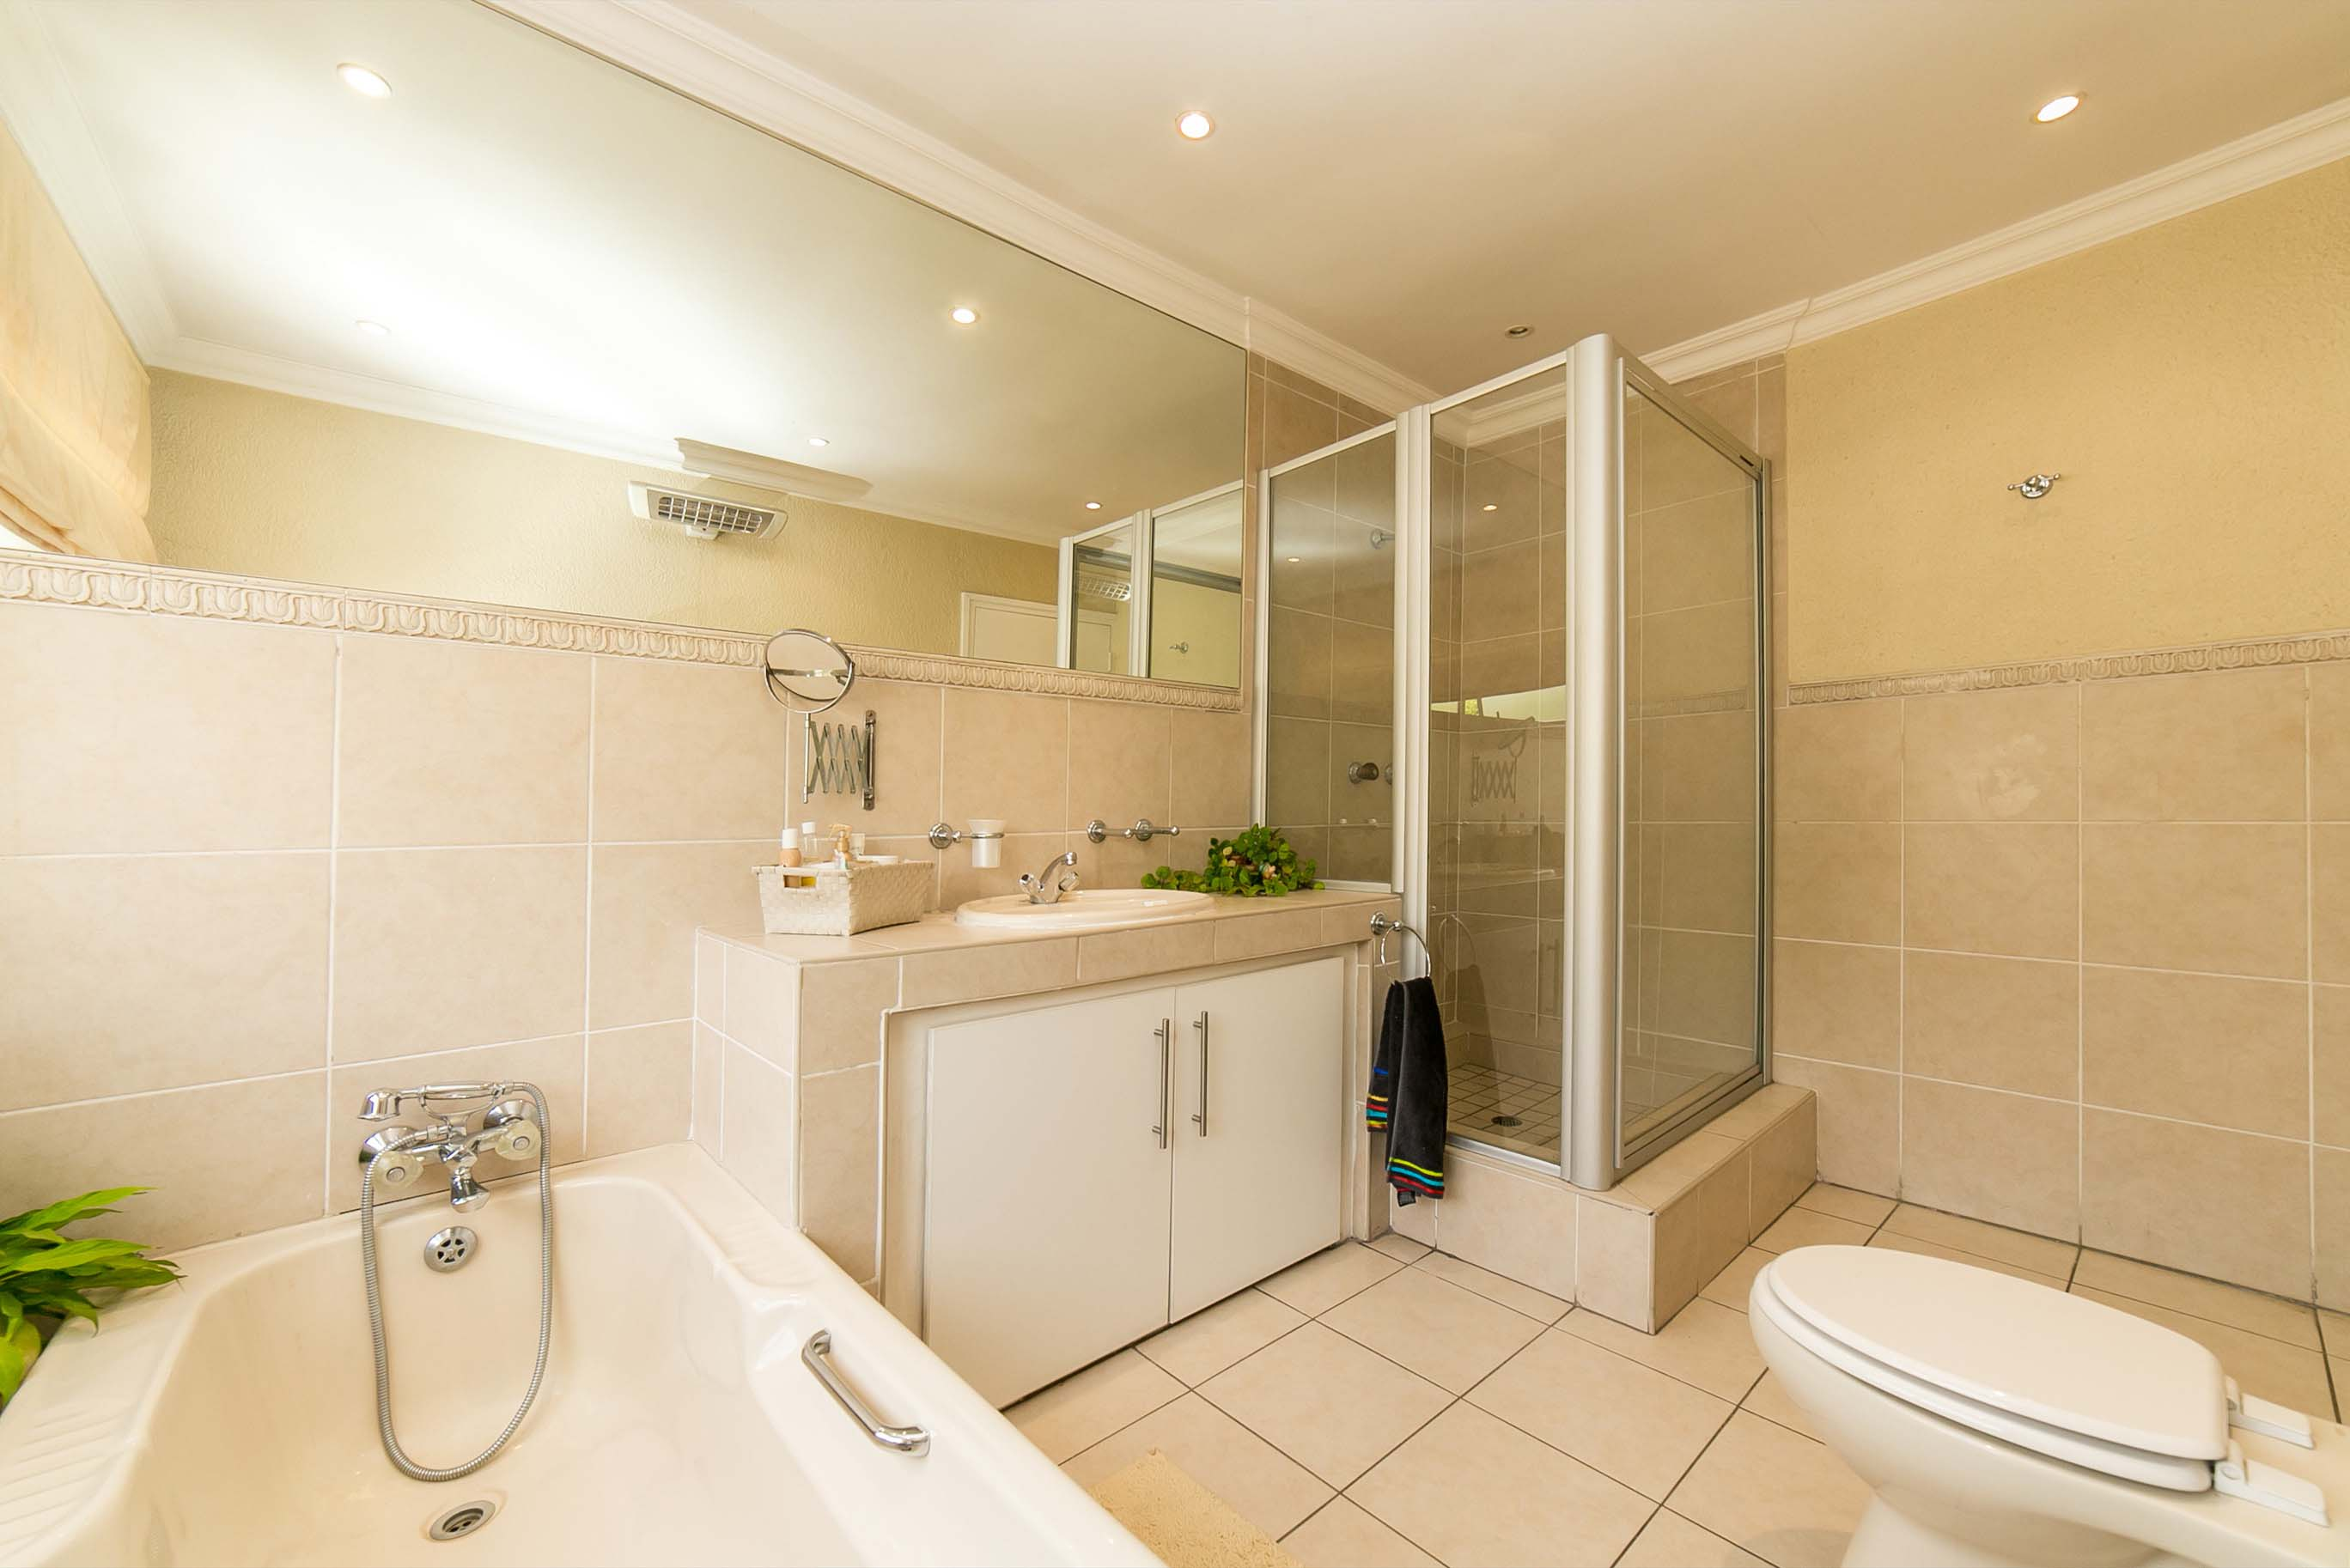 4 Bedroom House for sale in Lonehill ENT0082001 : photo#24